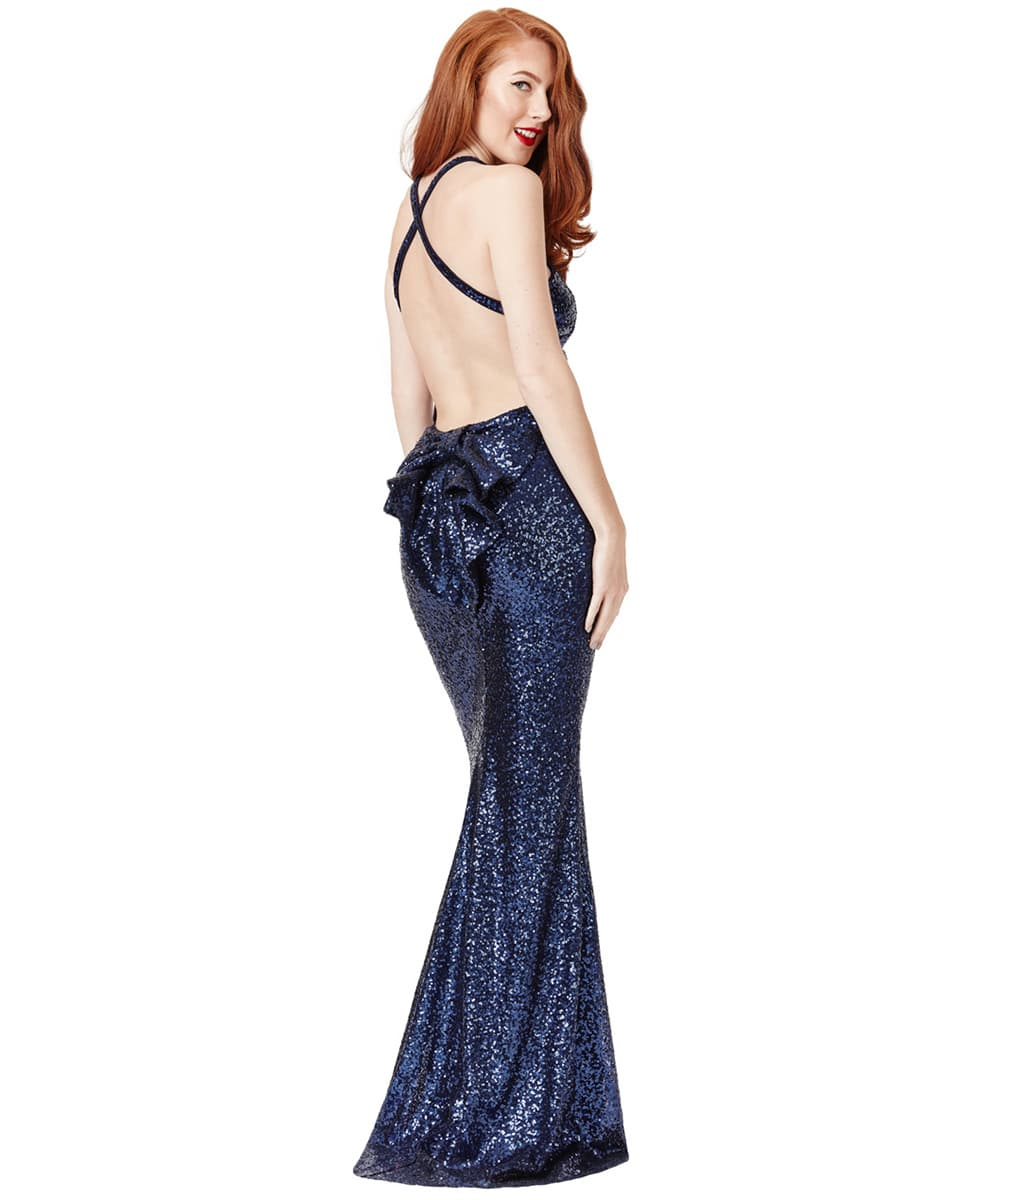 City goddess backless maxi dress in sequin lace dresses